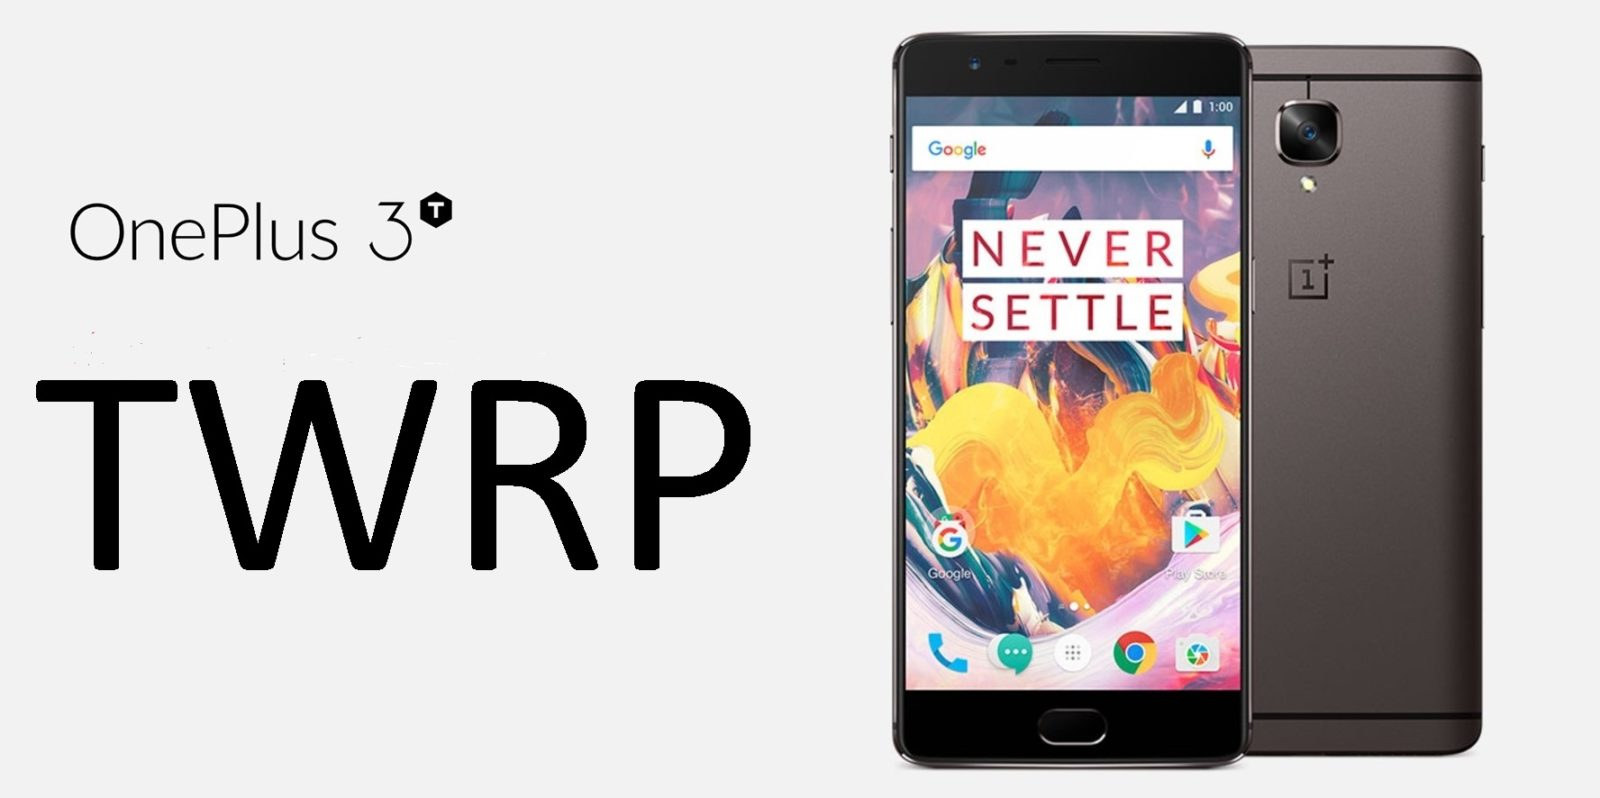 TWRP Recovery is available for the OnePlus 3T